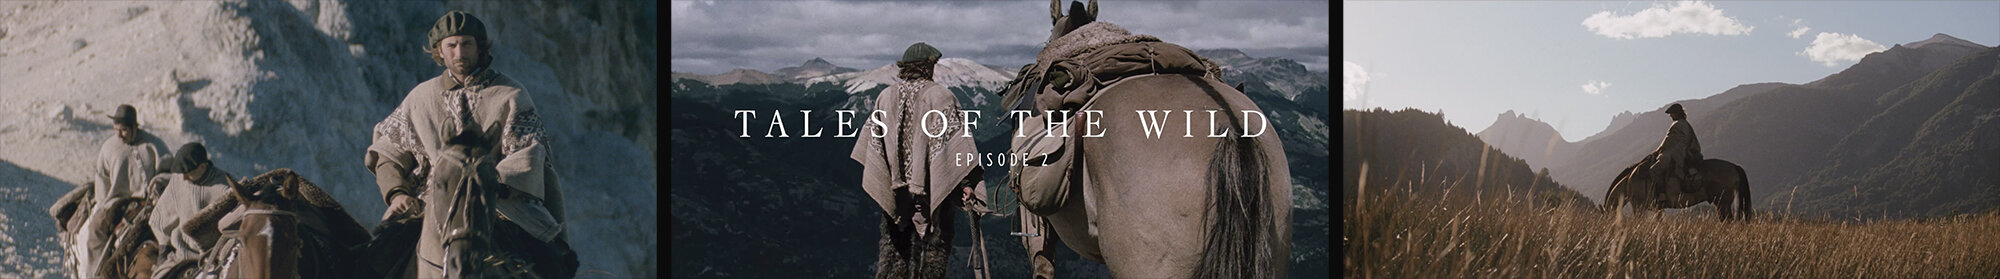 """DIOR  SAUVAGE I TALES OF THE WILD - Ep. 2 """"GAUCHO"""" I Dir. CLEMENT BEAUVAIS"""